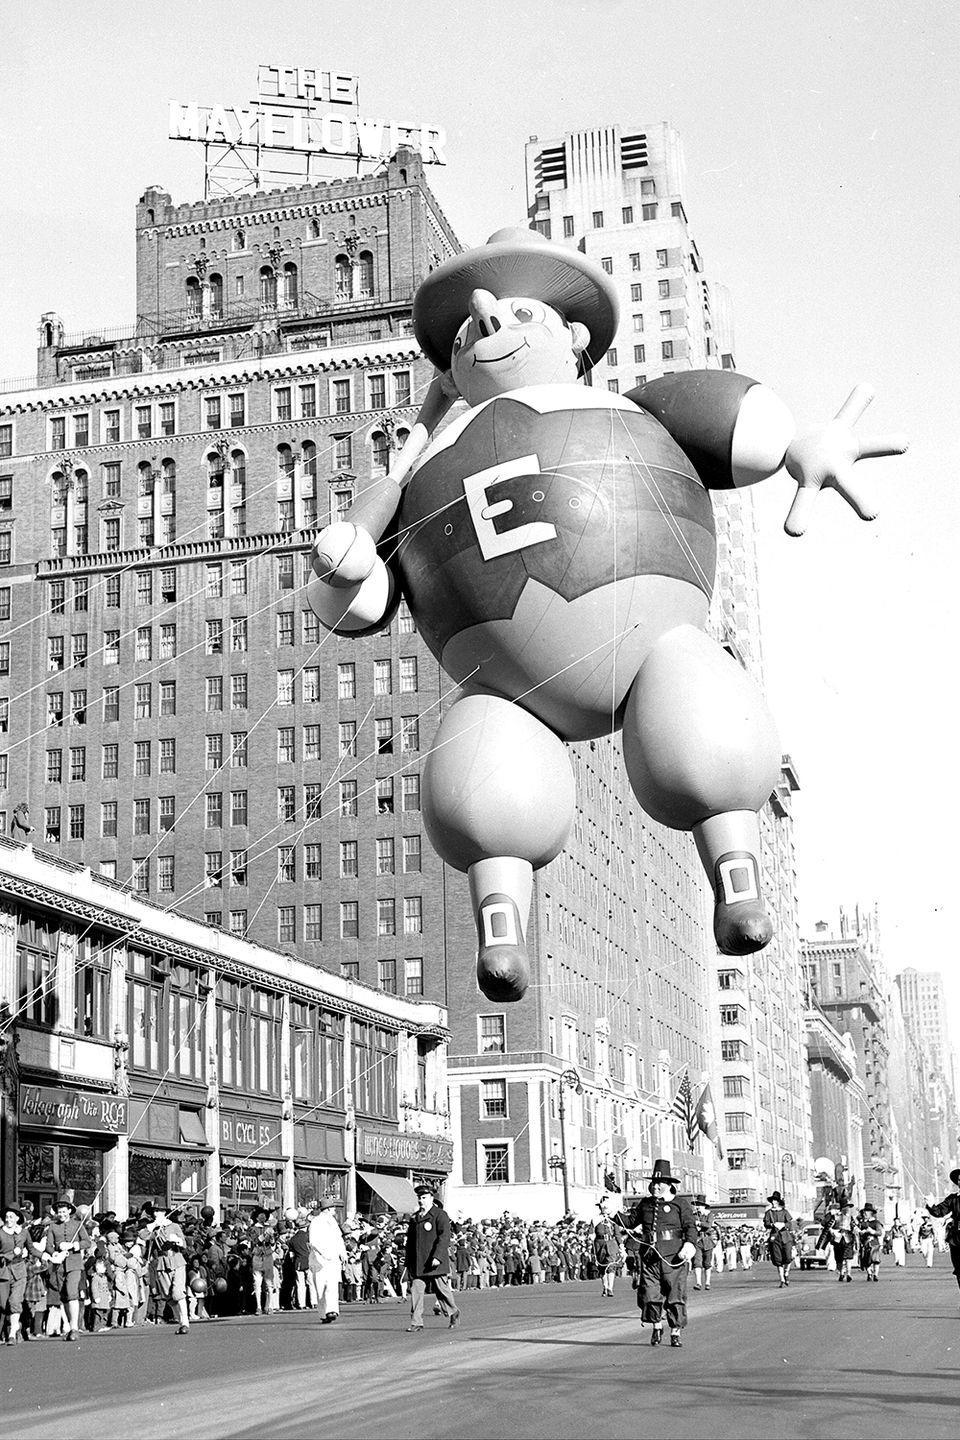 <p>The Macy's Thanksgiving Day Parade was first broadcast on local television in 1946. The iconic event made it to national stations the following year.</p>